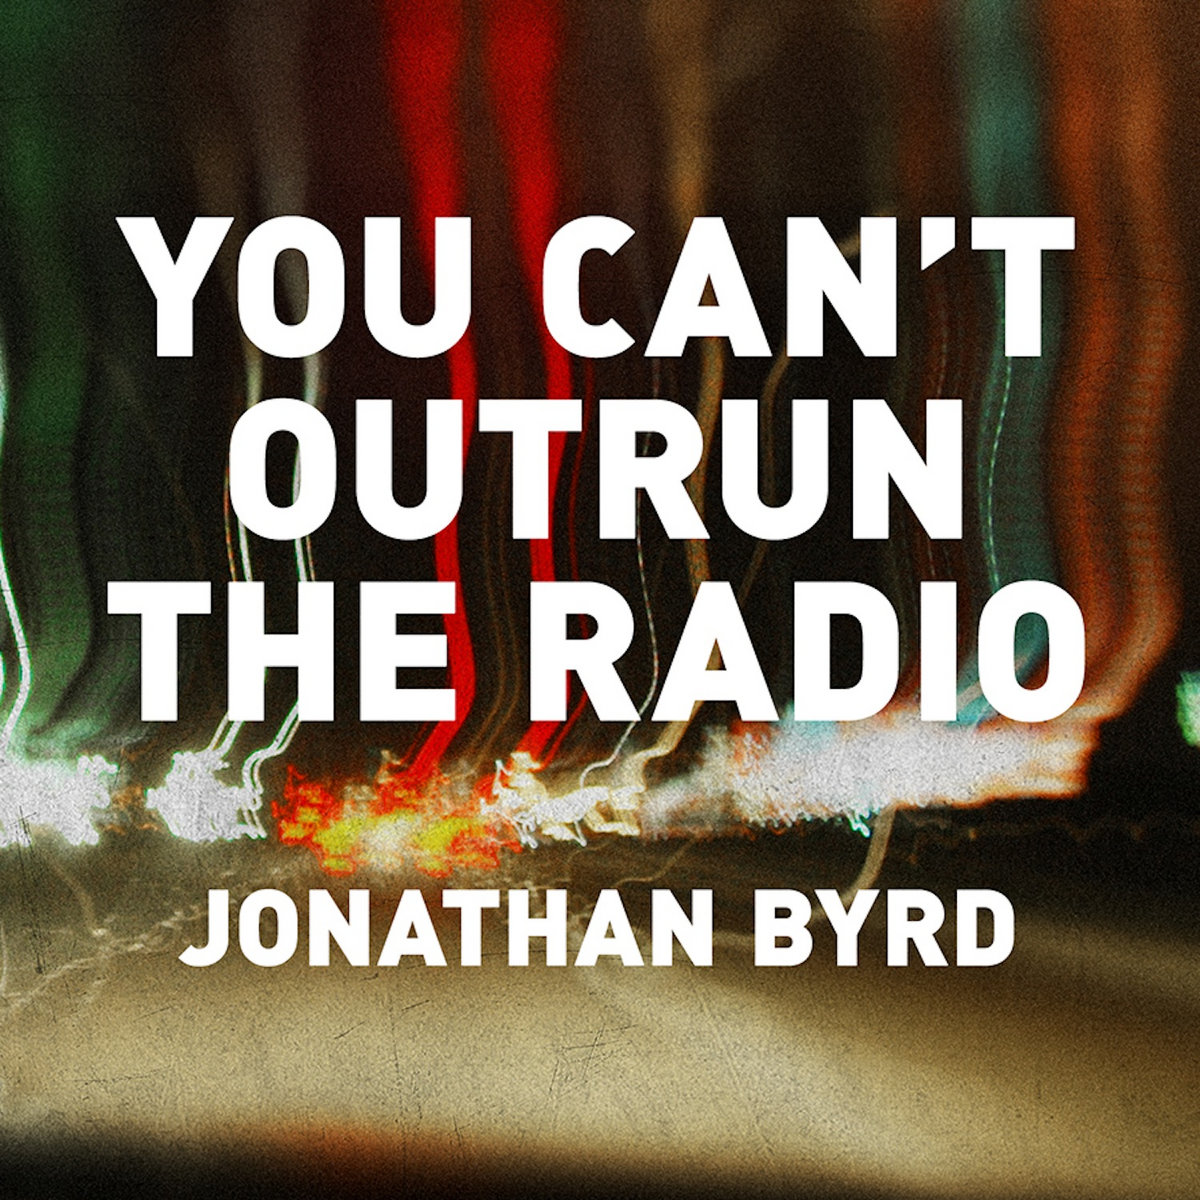 You cant outrun the radio jonathan byrd by jonathan byrd hexwebz Gallery